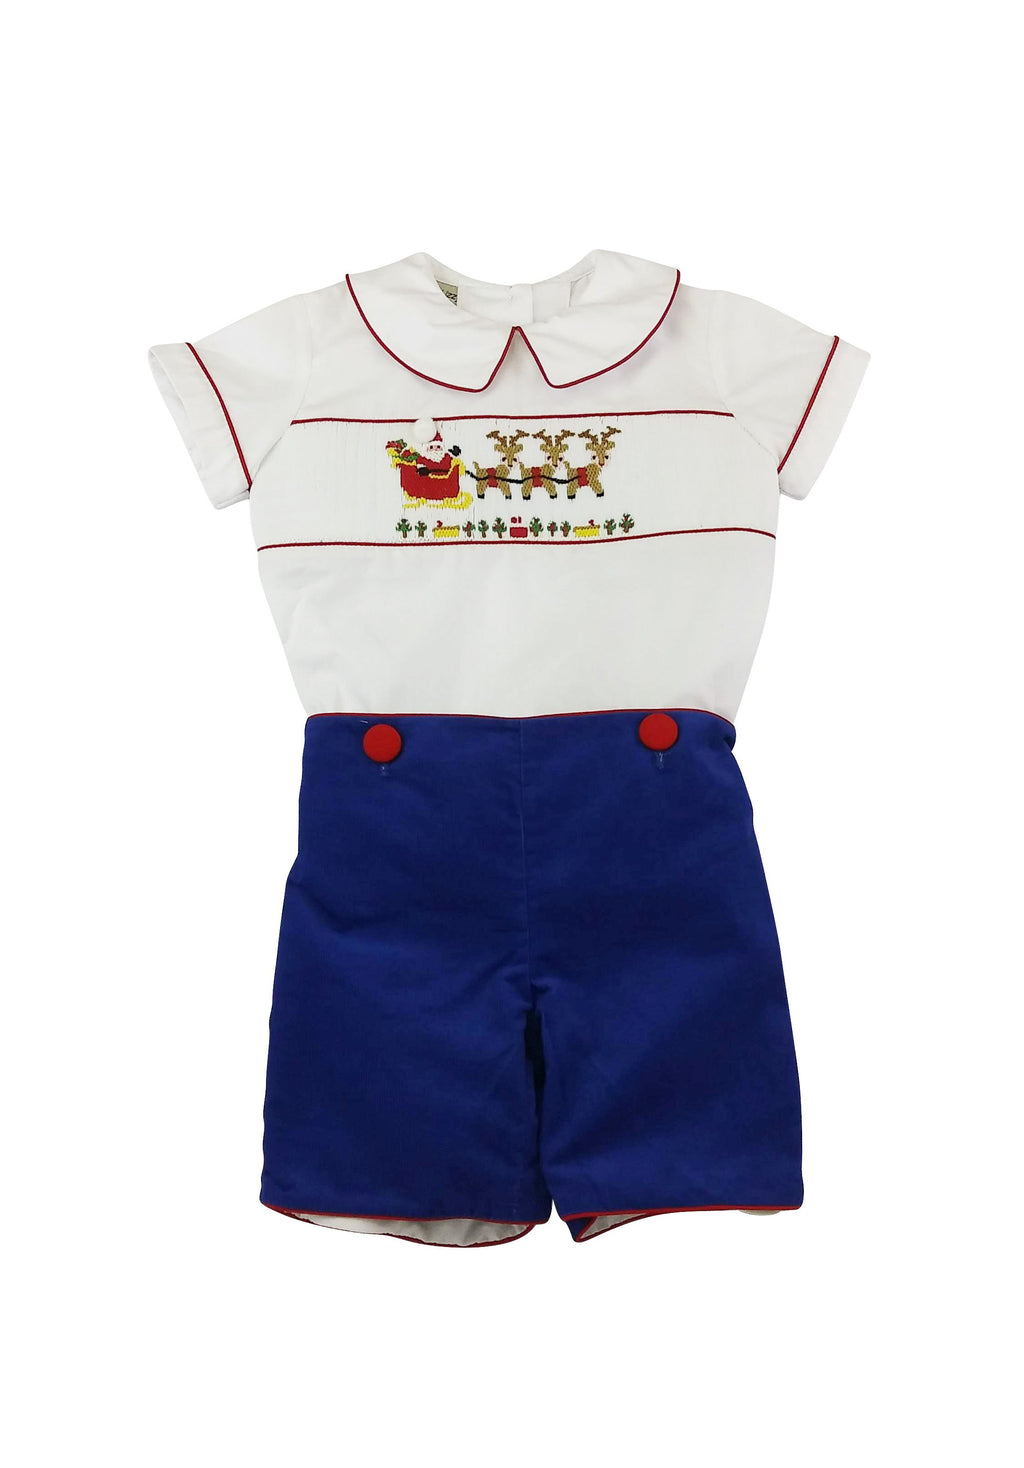 Santa On The Way Boy's Short Set - Little Threads Inc. Children's Clothing